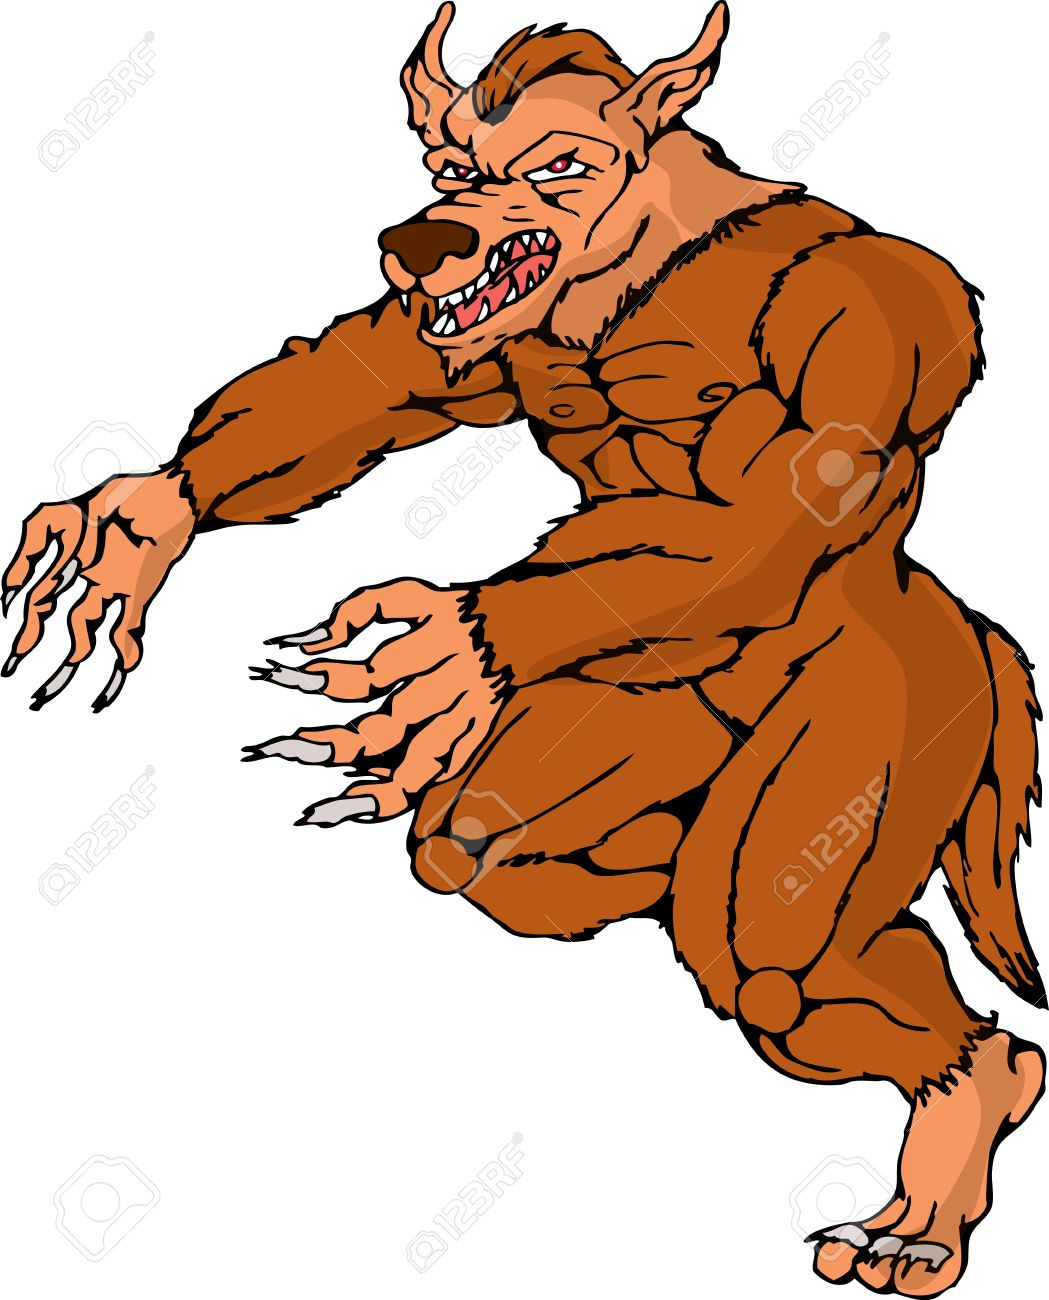 illustration of a cartoon werewolf wolfman running attacking on isolated white background Stock Vector - 13753537